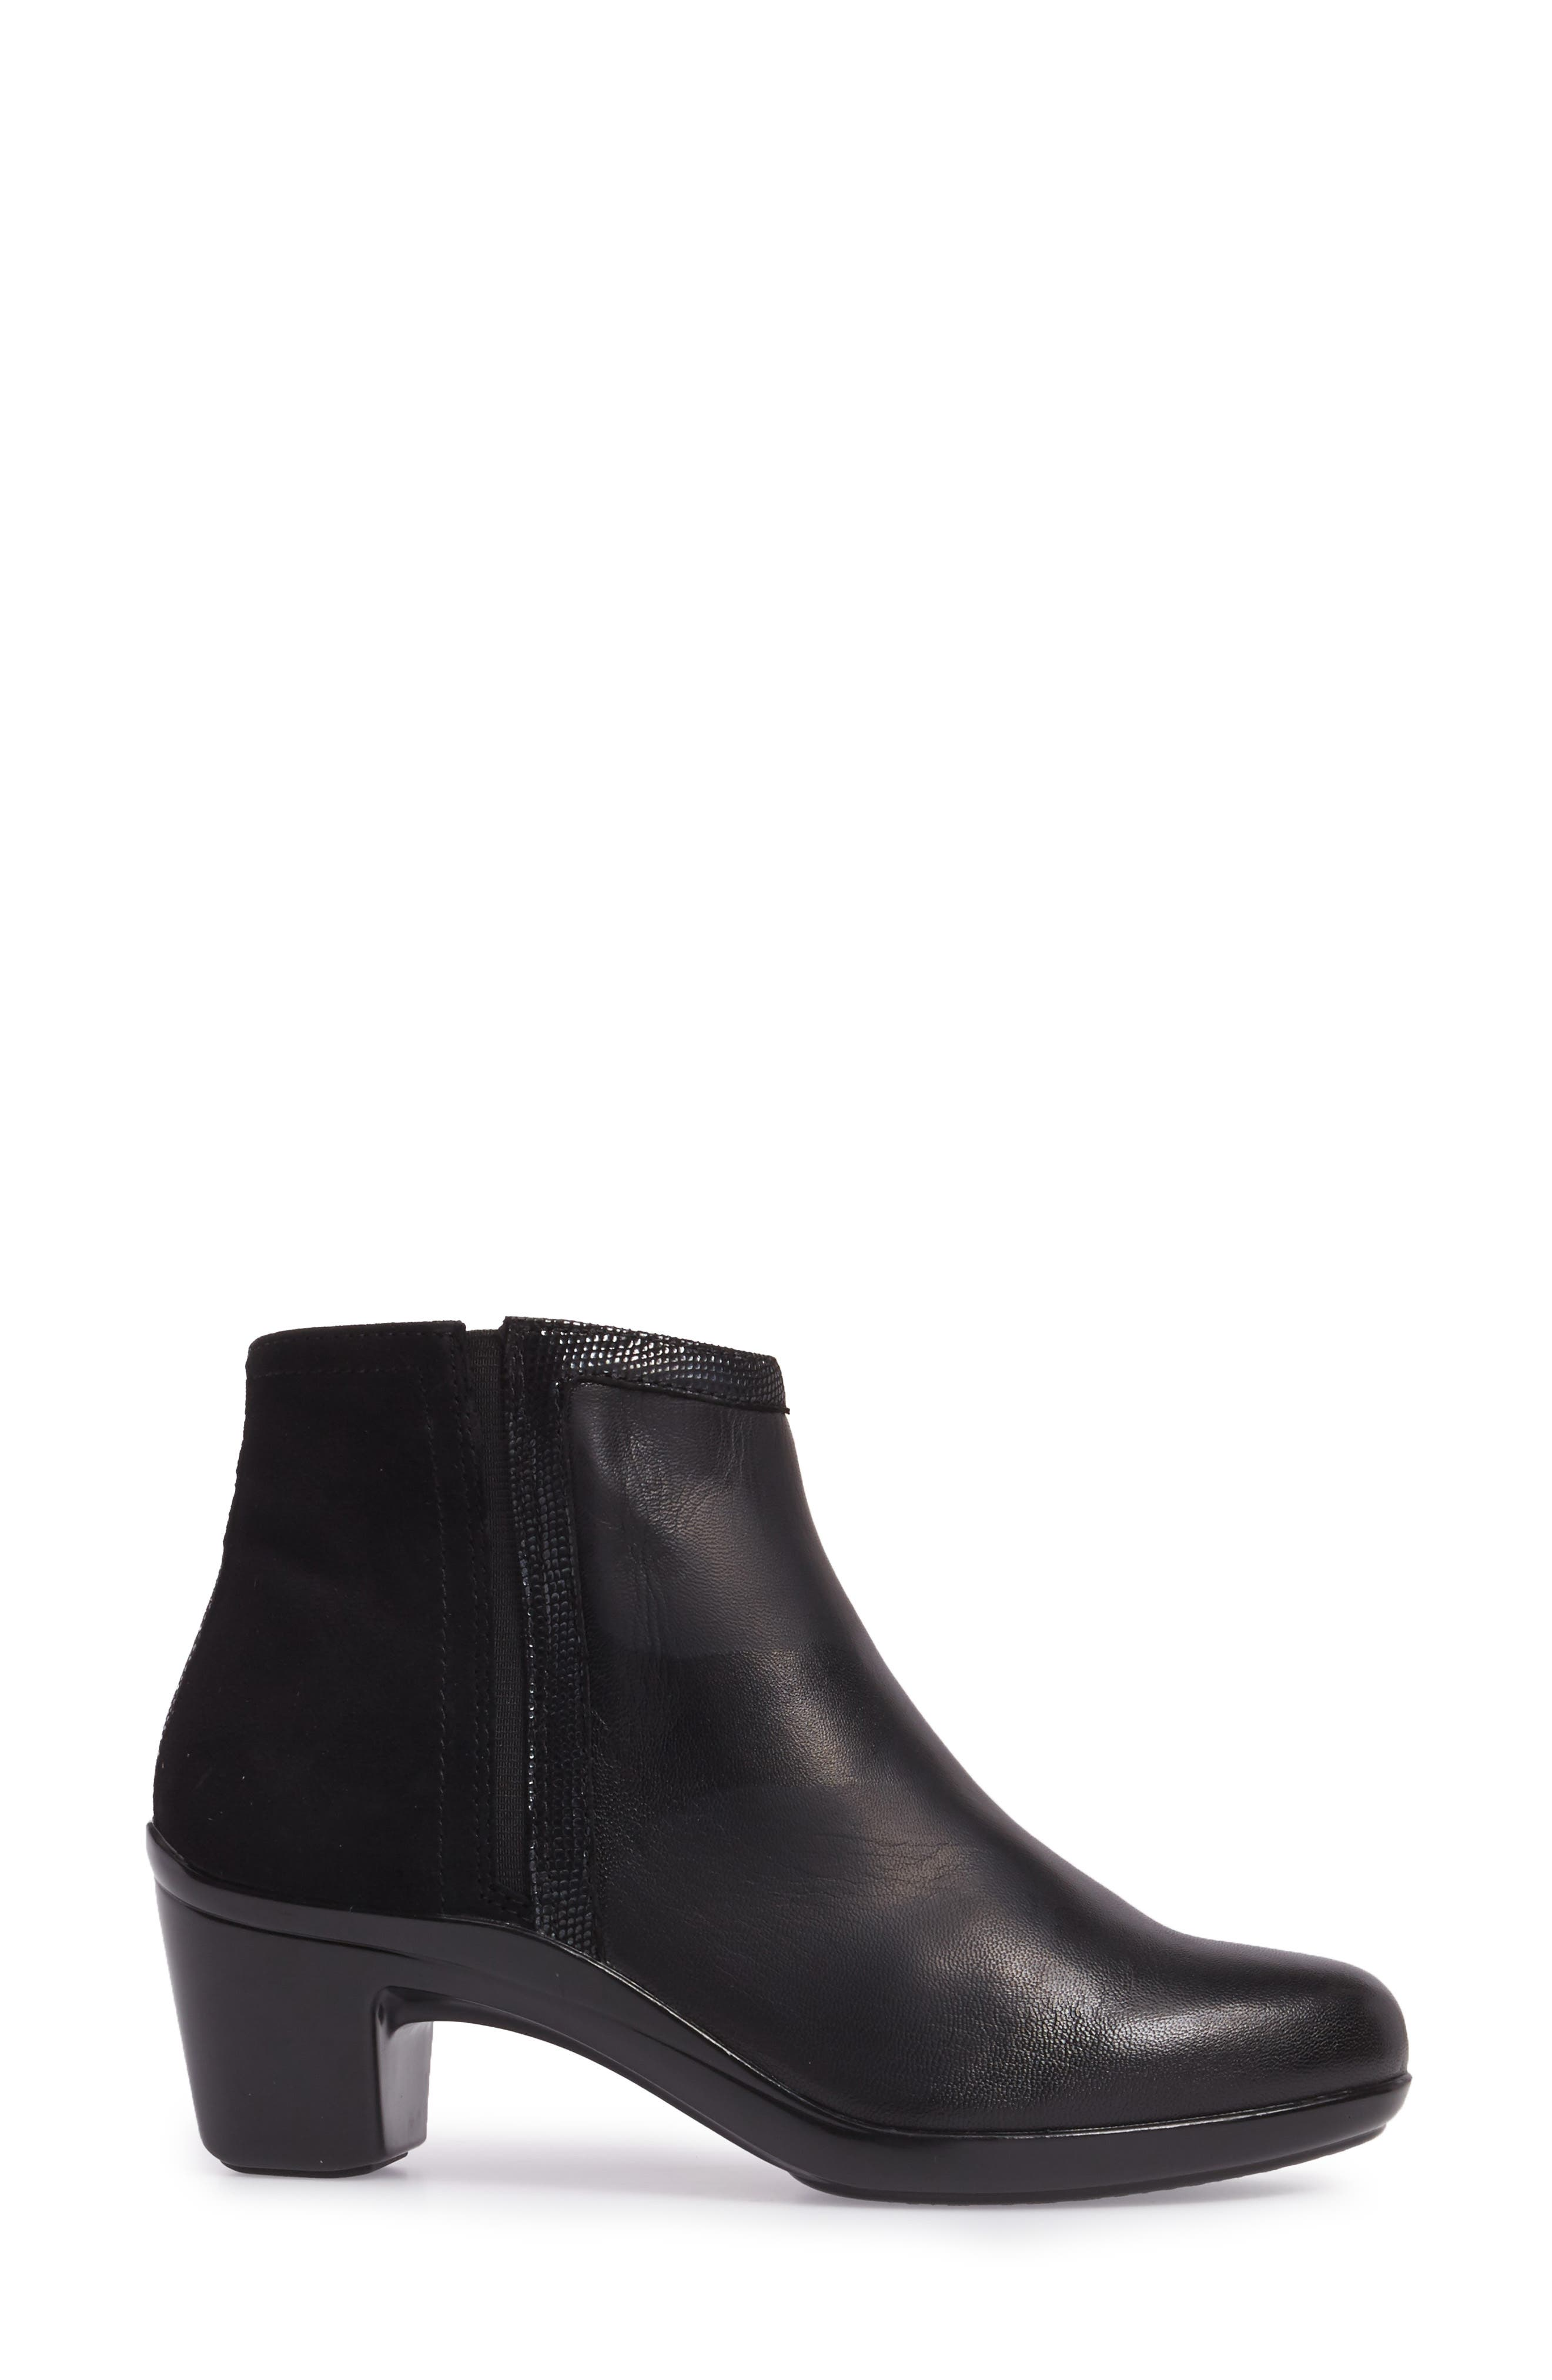 Lexee Wateproof Bootie,                             Alternate thumbnail 3, color,                             Black Leather